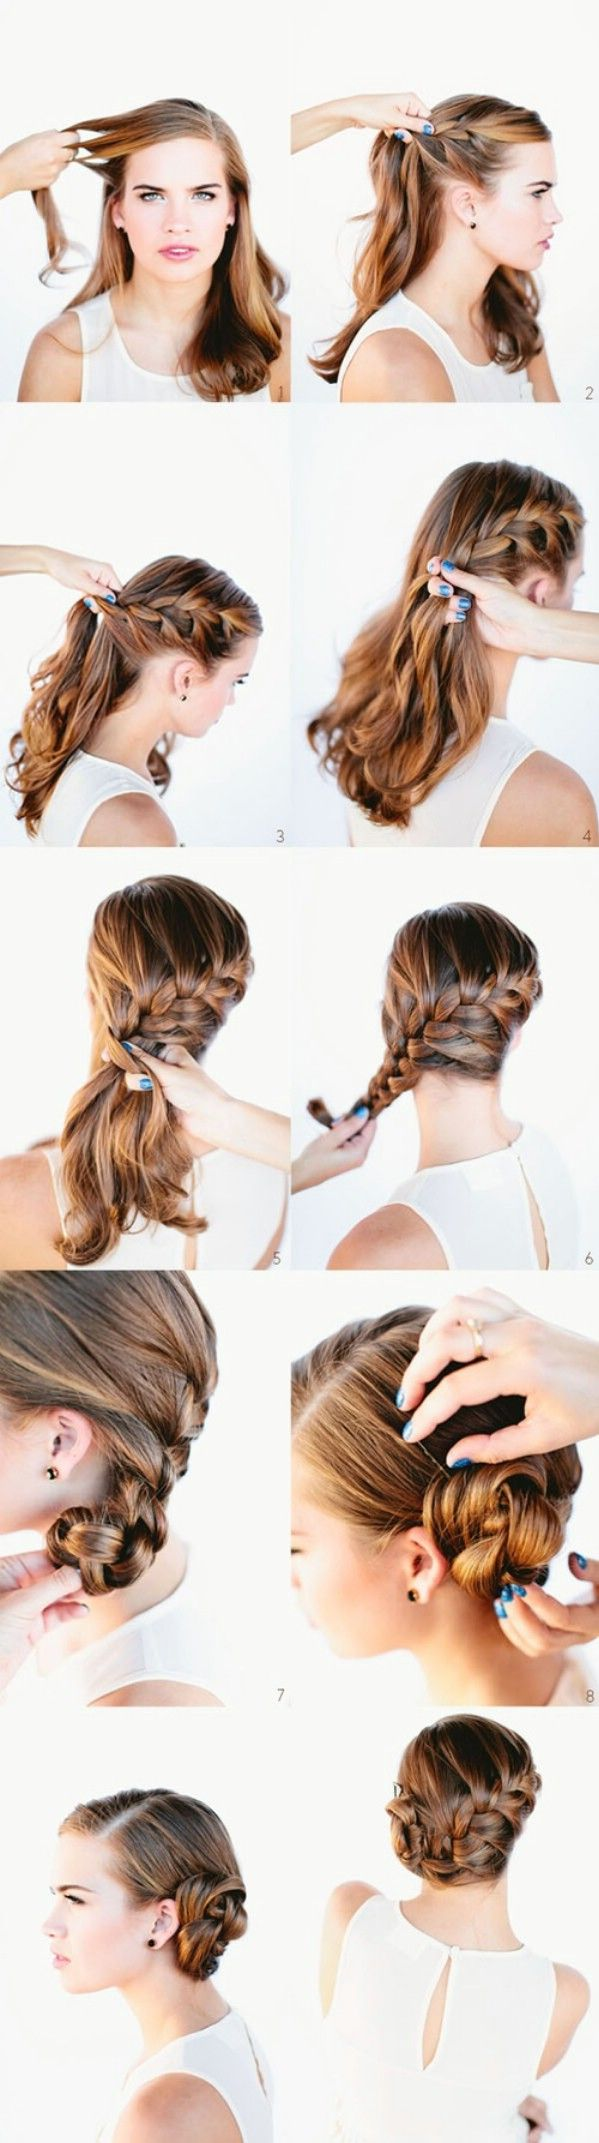 Easiest Updo That Looks Polished For Work, Going Out On A Date, Or Even French  Braid